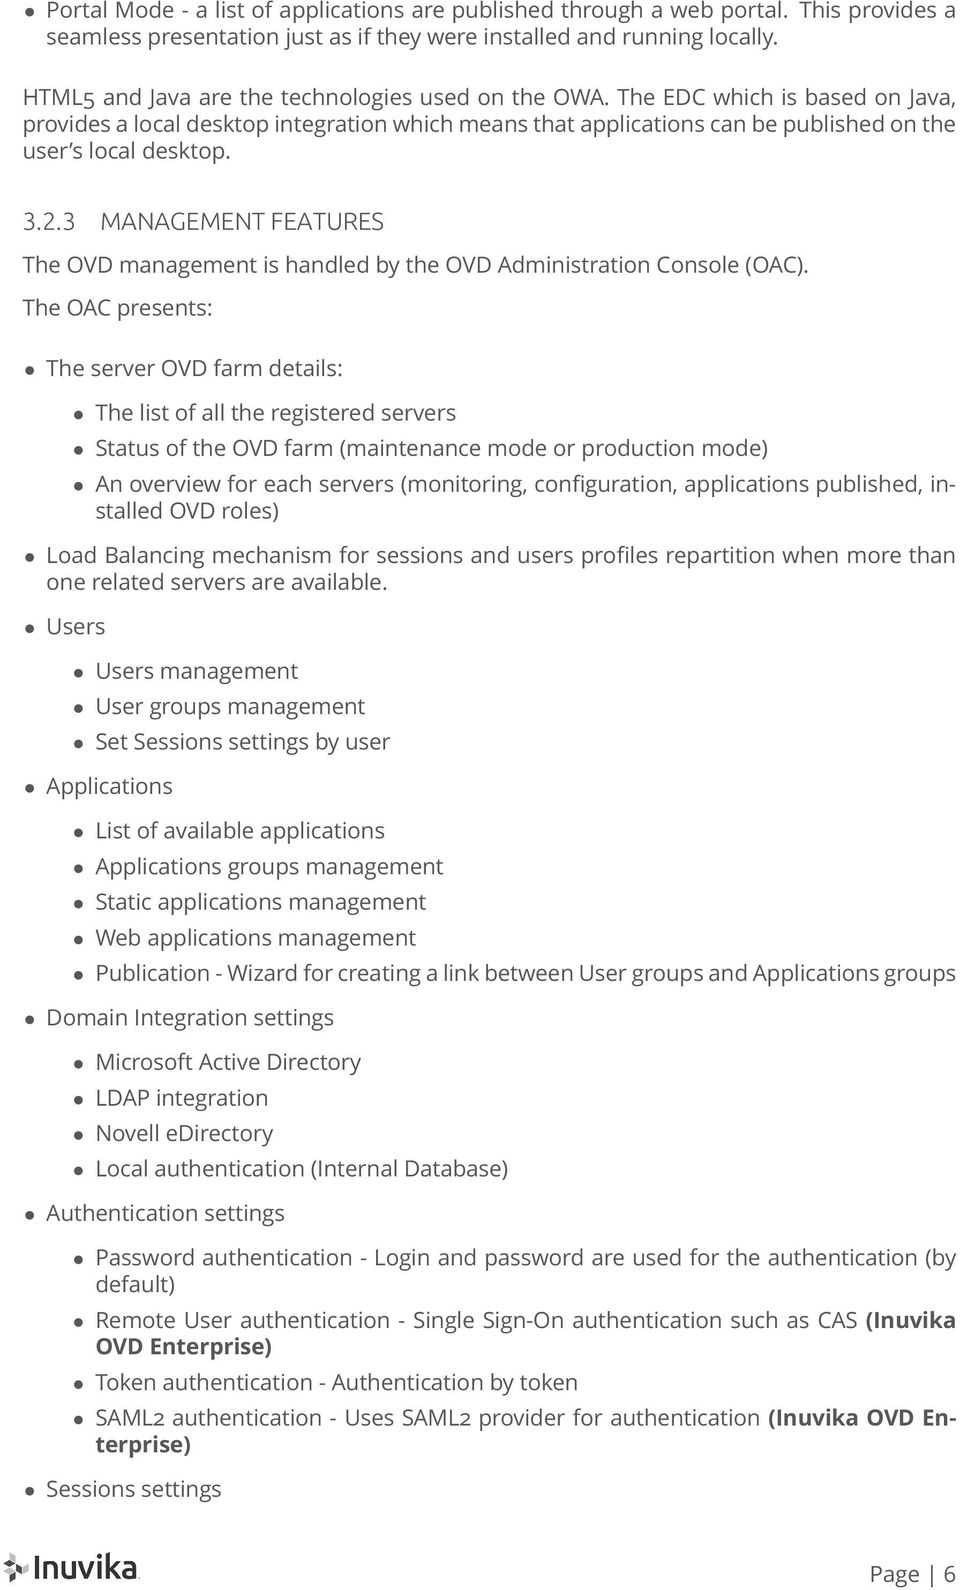 2.3 MANAGEMENT FEATURES The OVD management is handled by the OVD Administration Console (OAC).